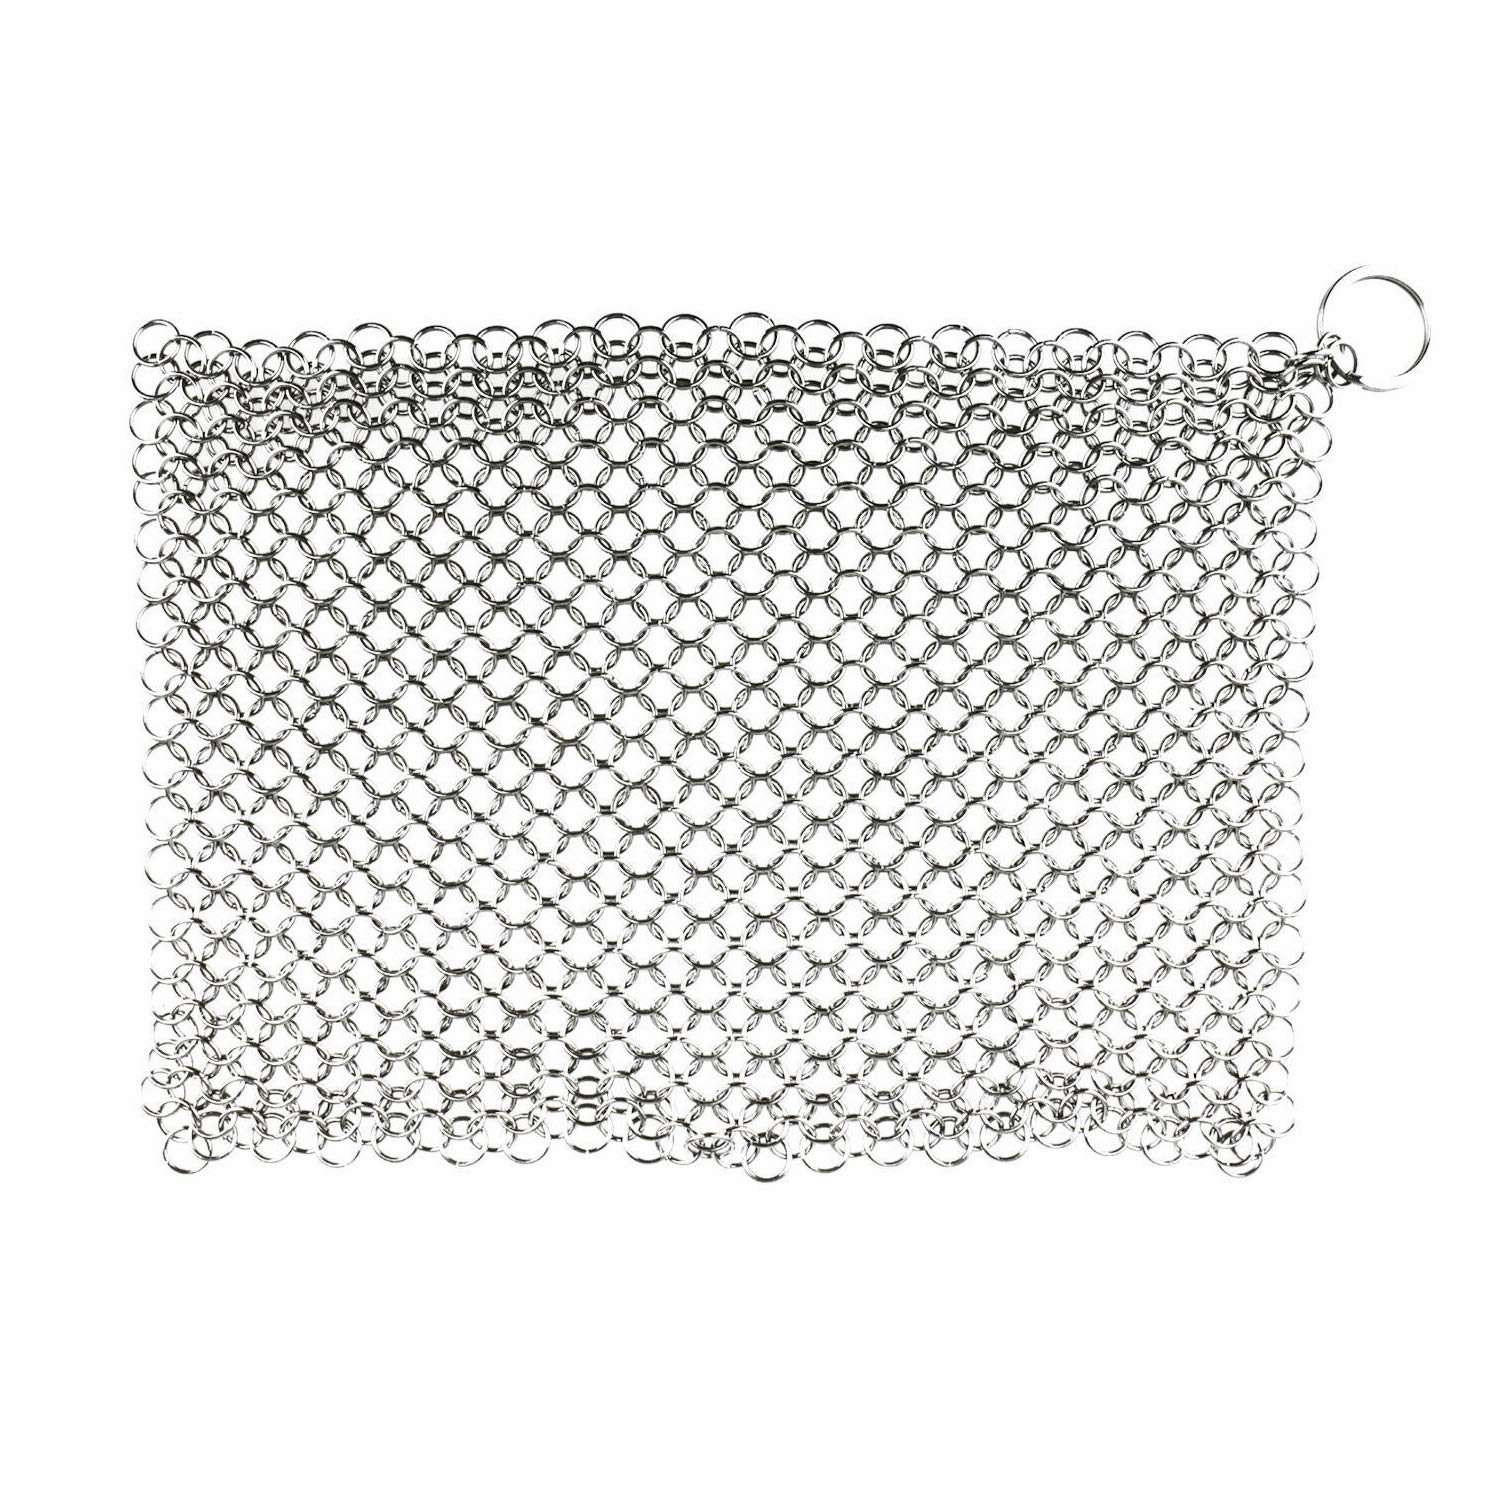 LOVINASTORE - Stainless Steel Cast Iron Cleaner Chainmail Scrubber Home Cookware Kitchen Tool, 8''(L) x 6''(W)